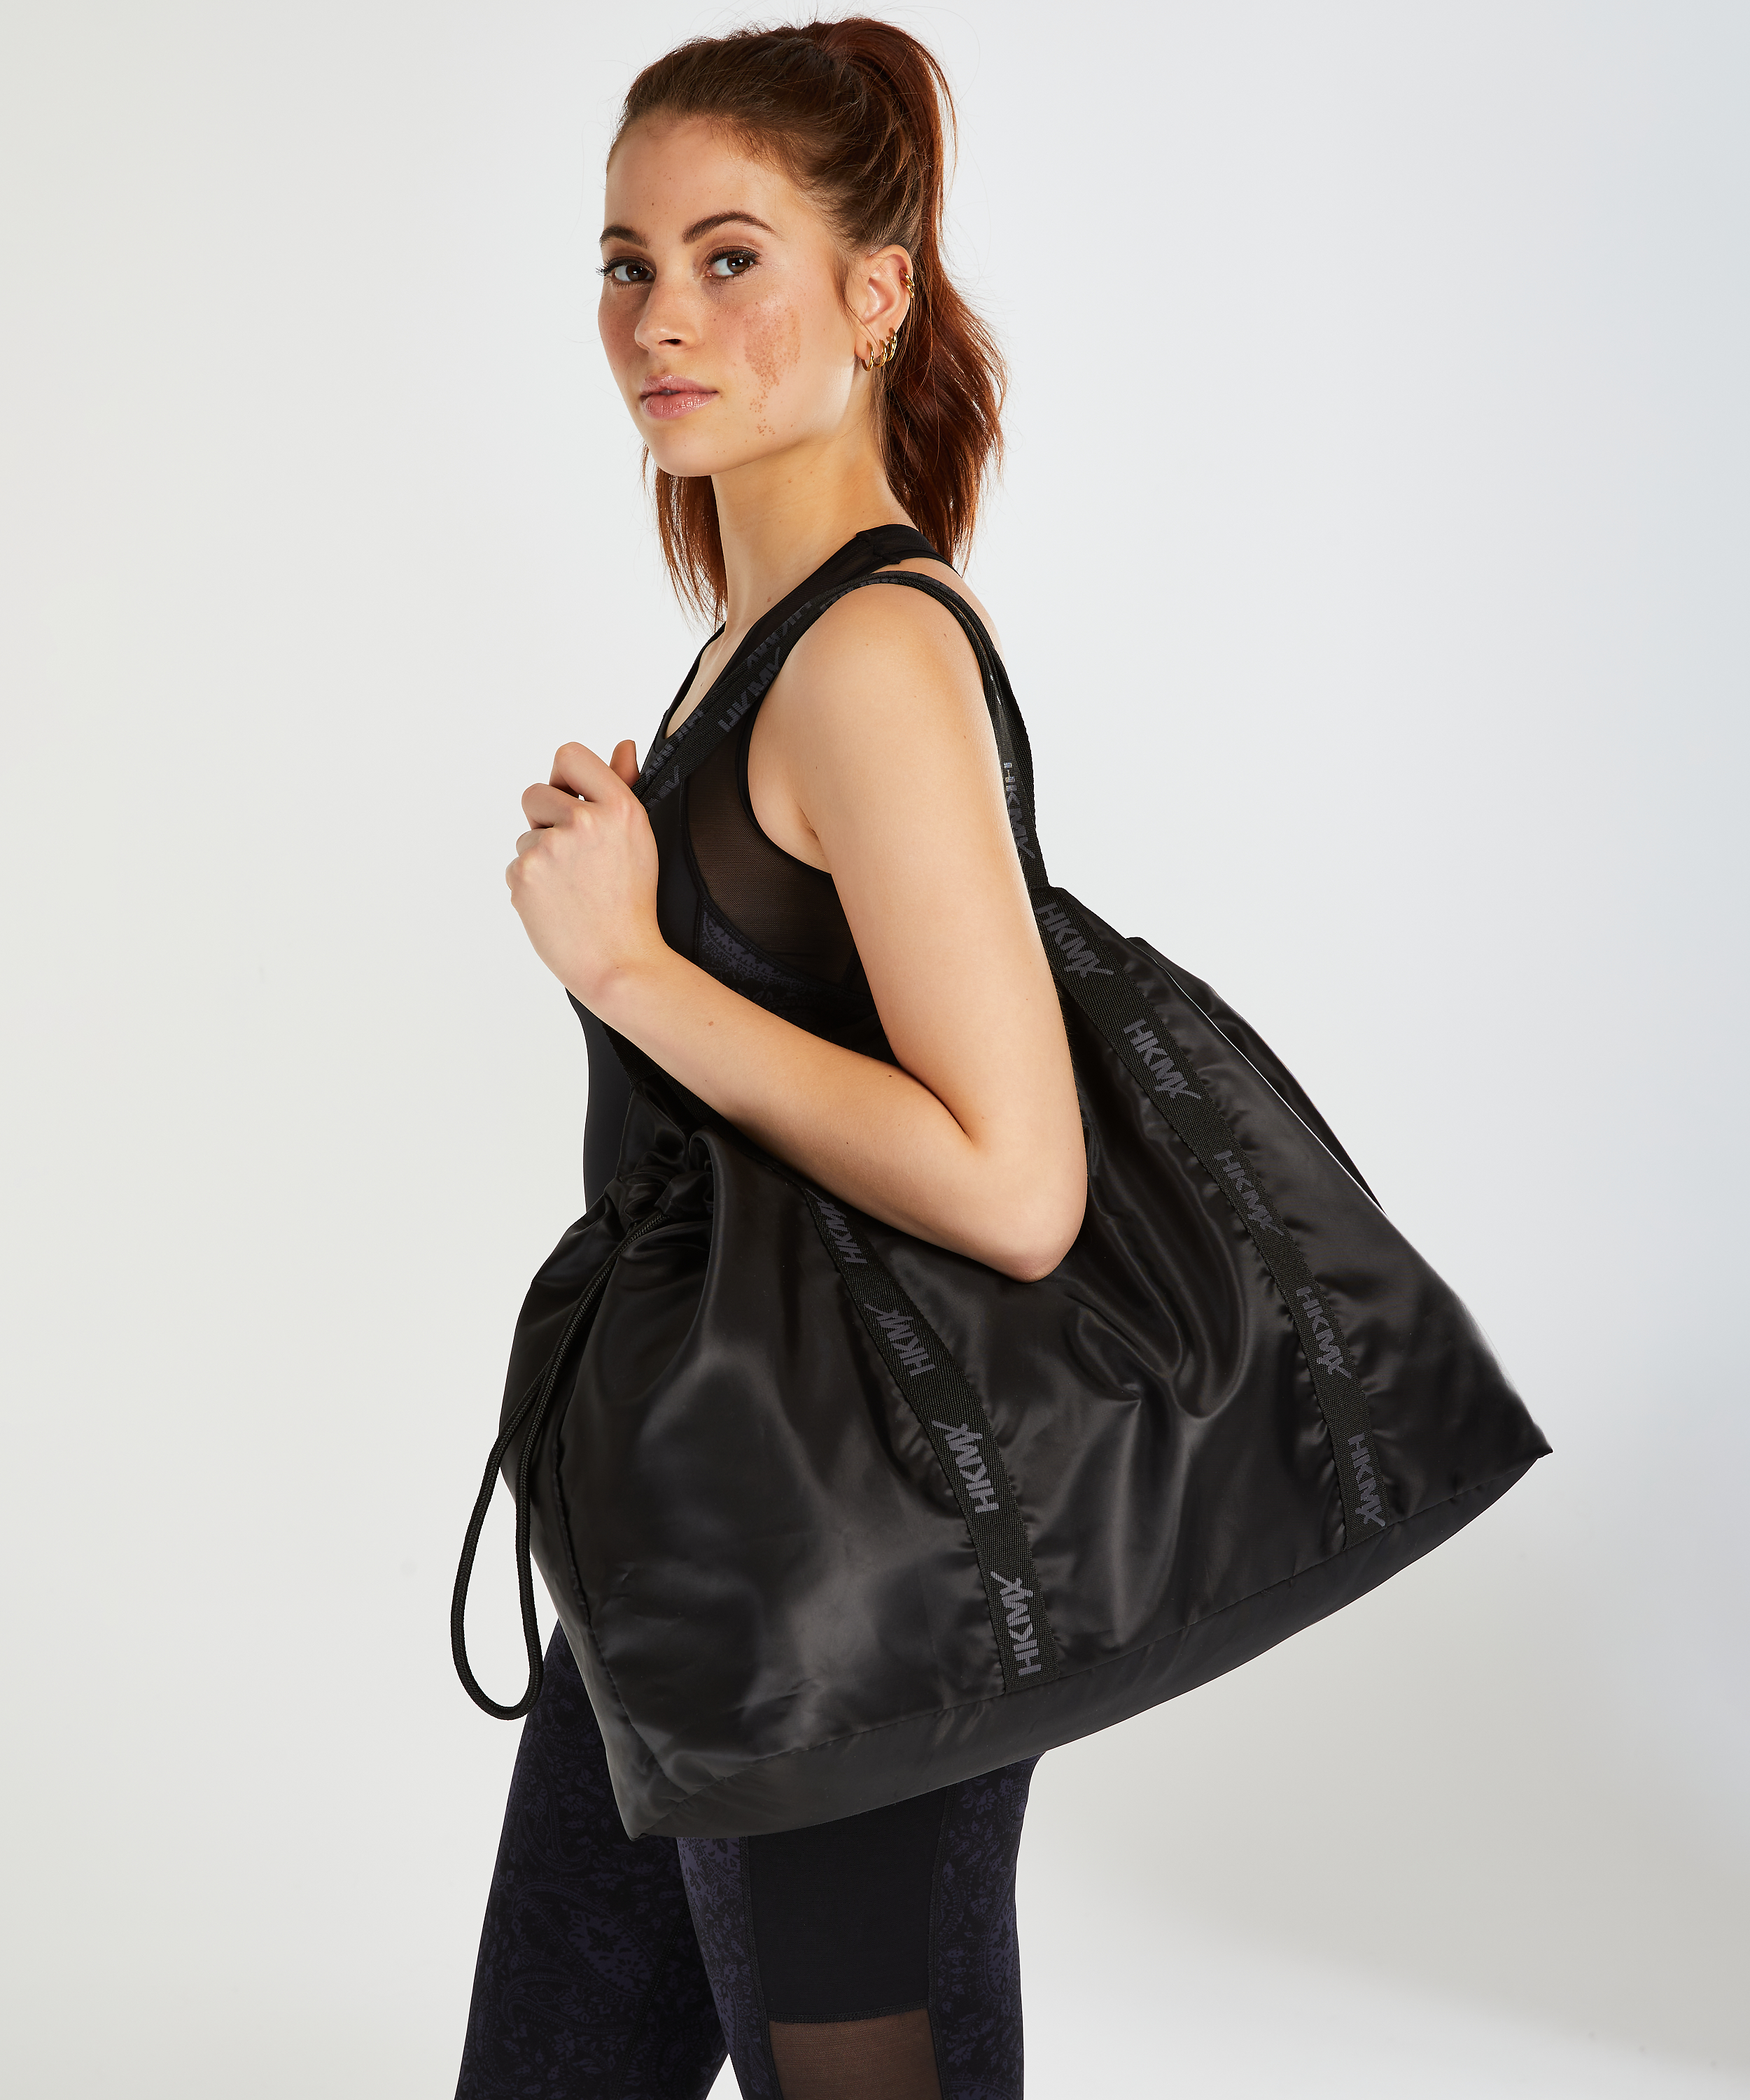 HKMX Tote bag, Zwart, main